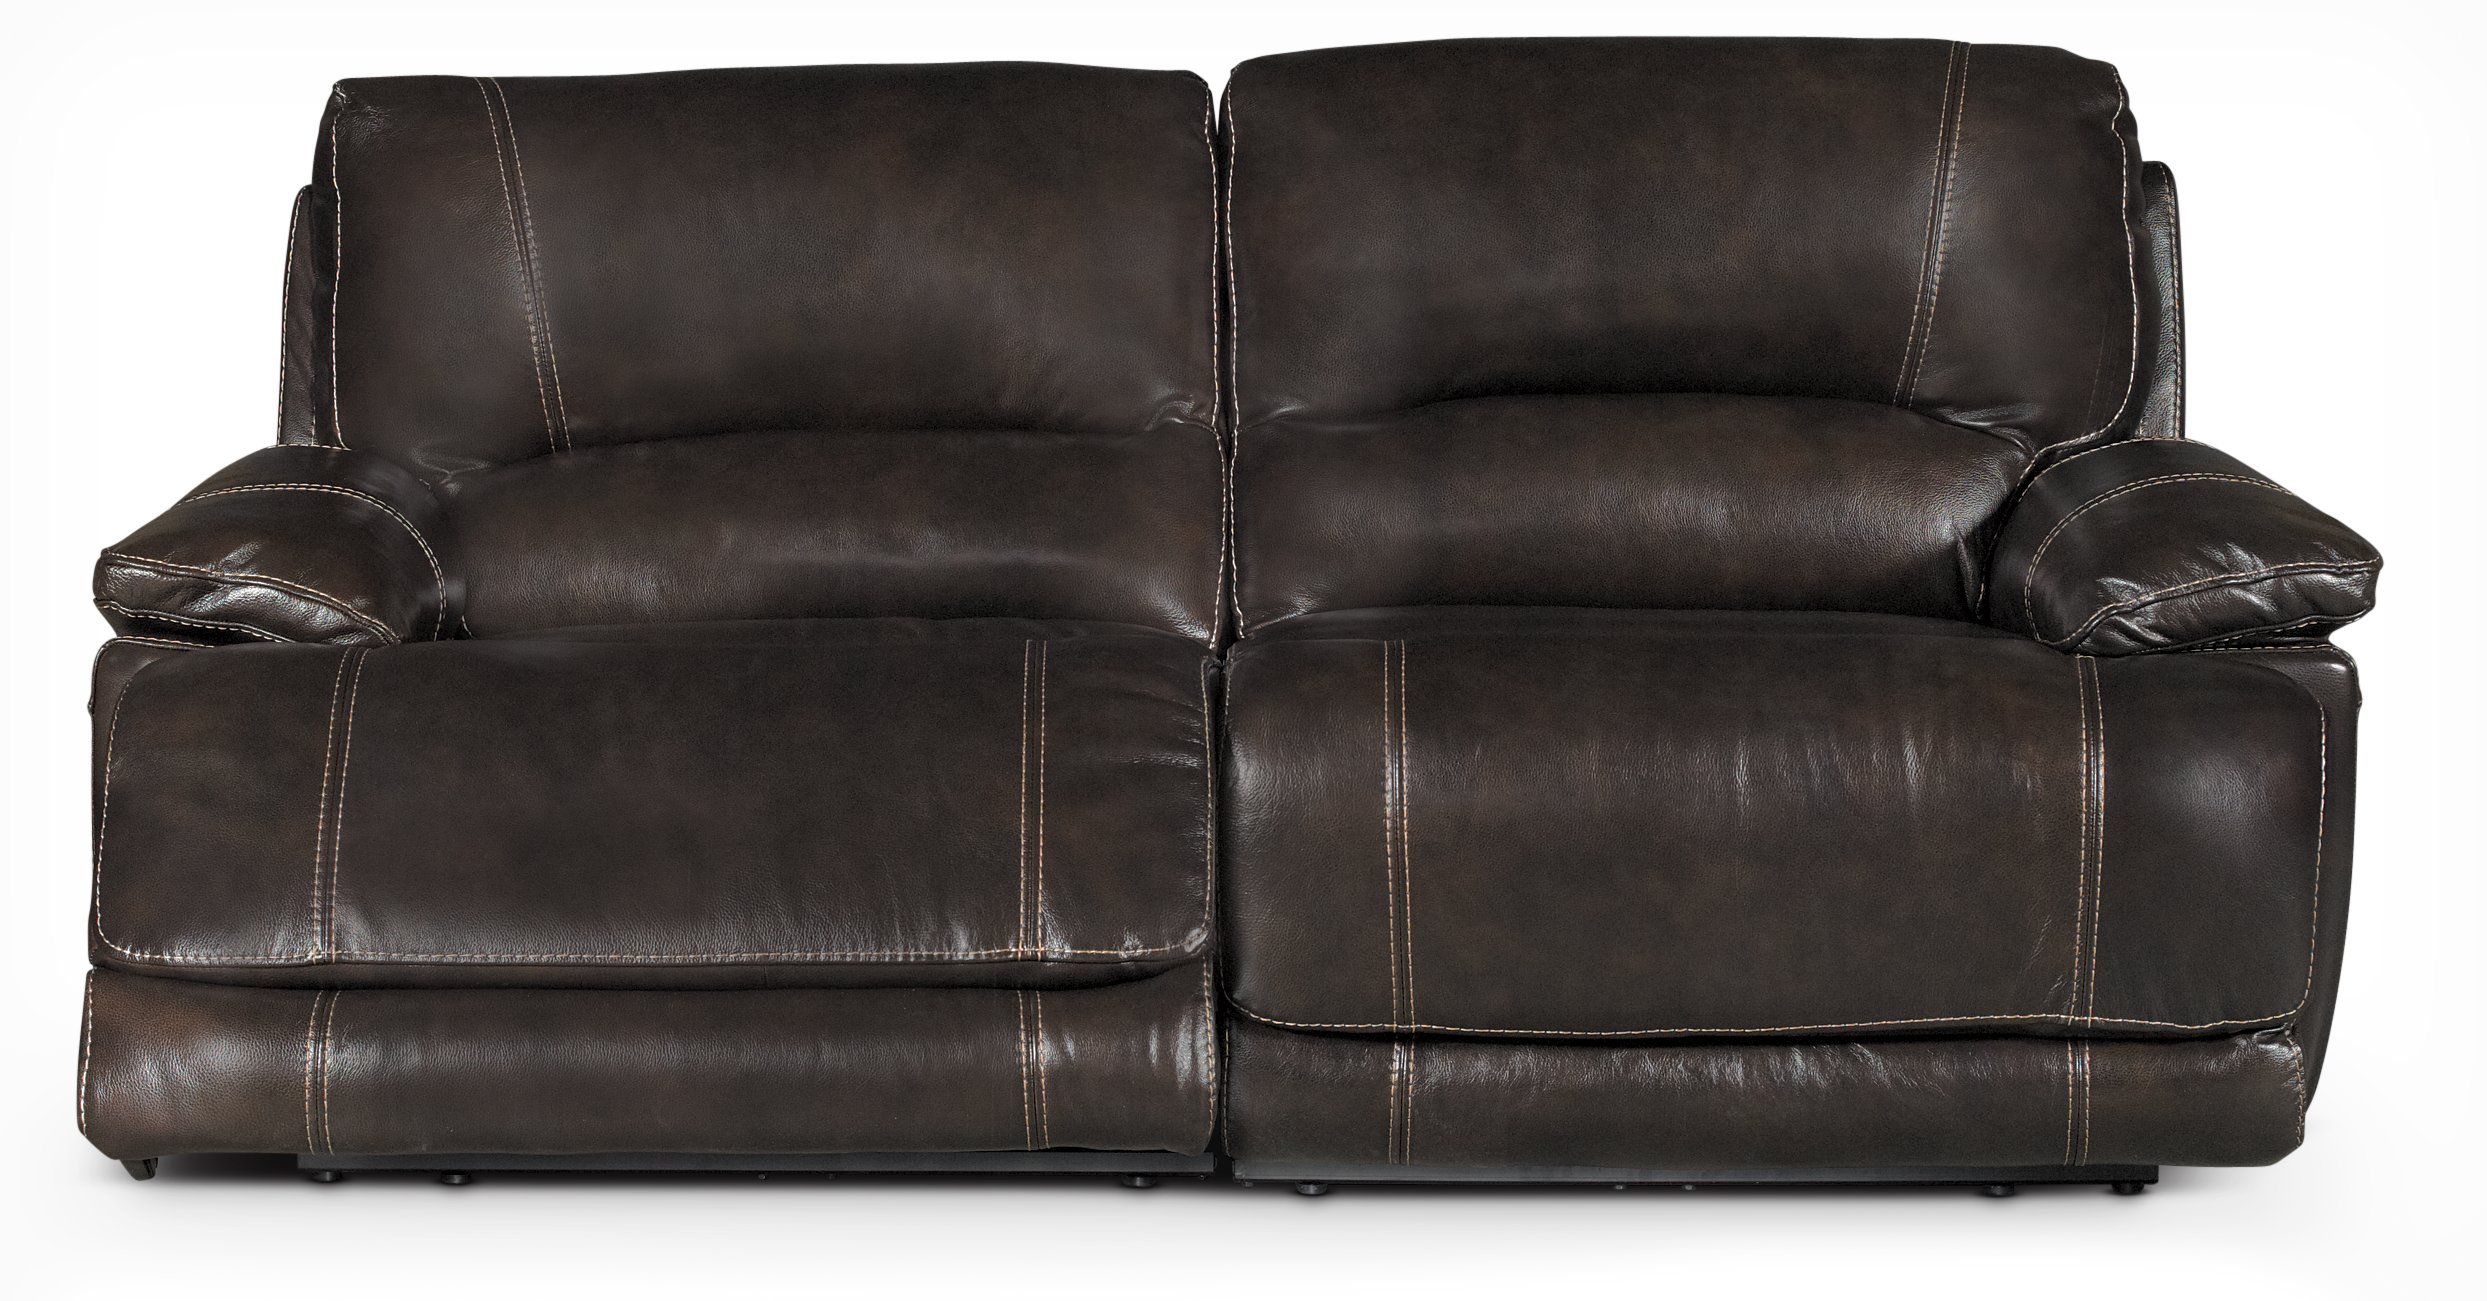 furniture leather room sofa sofas sectionals willey shop sectional rc living piece store reclining jsp search and wayne black rcwilley